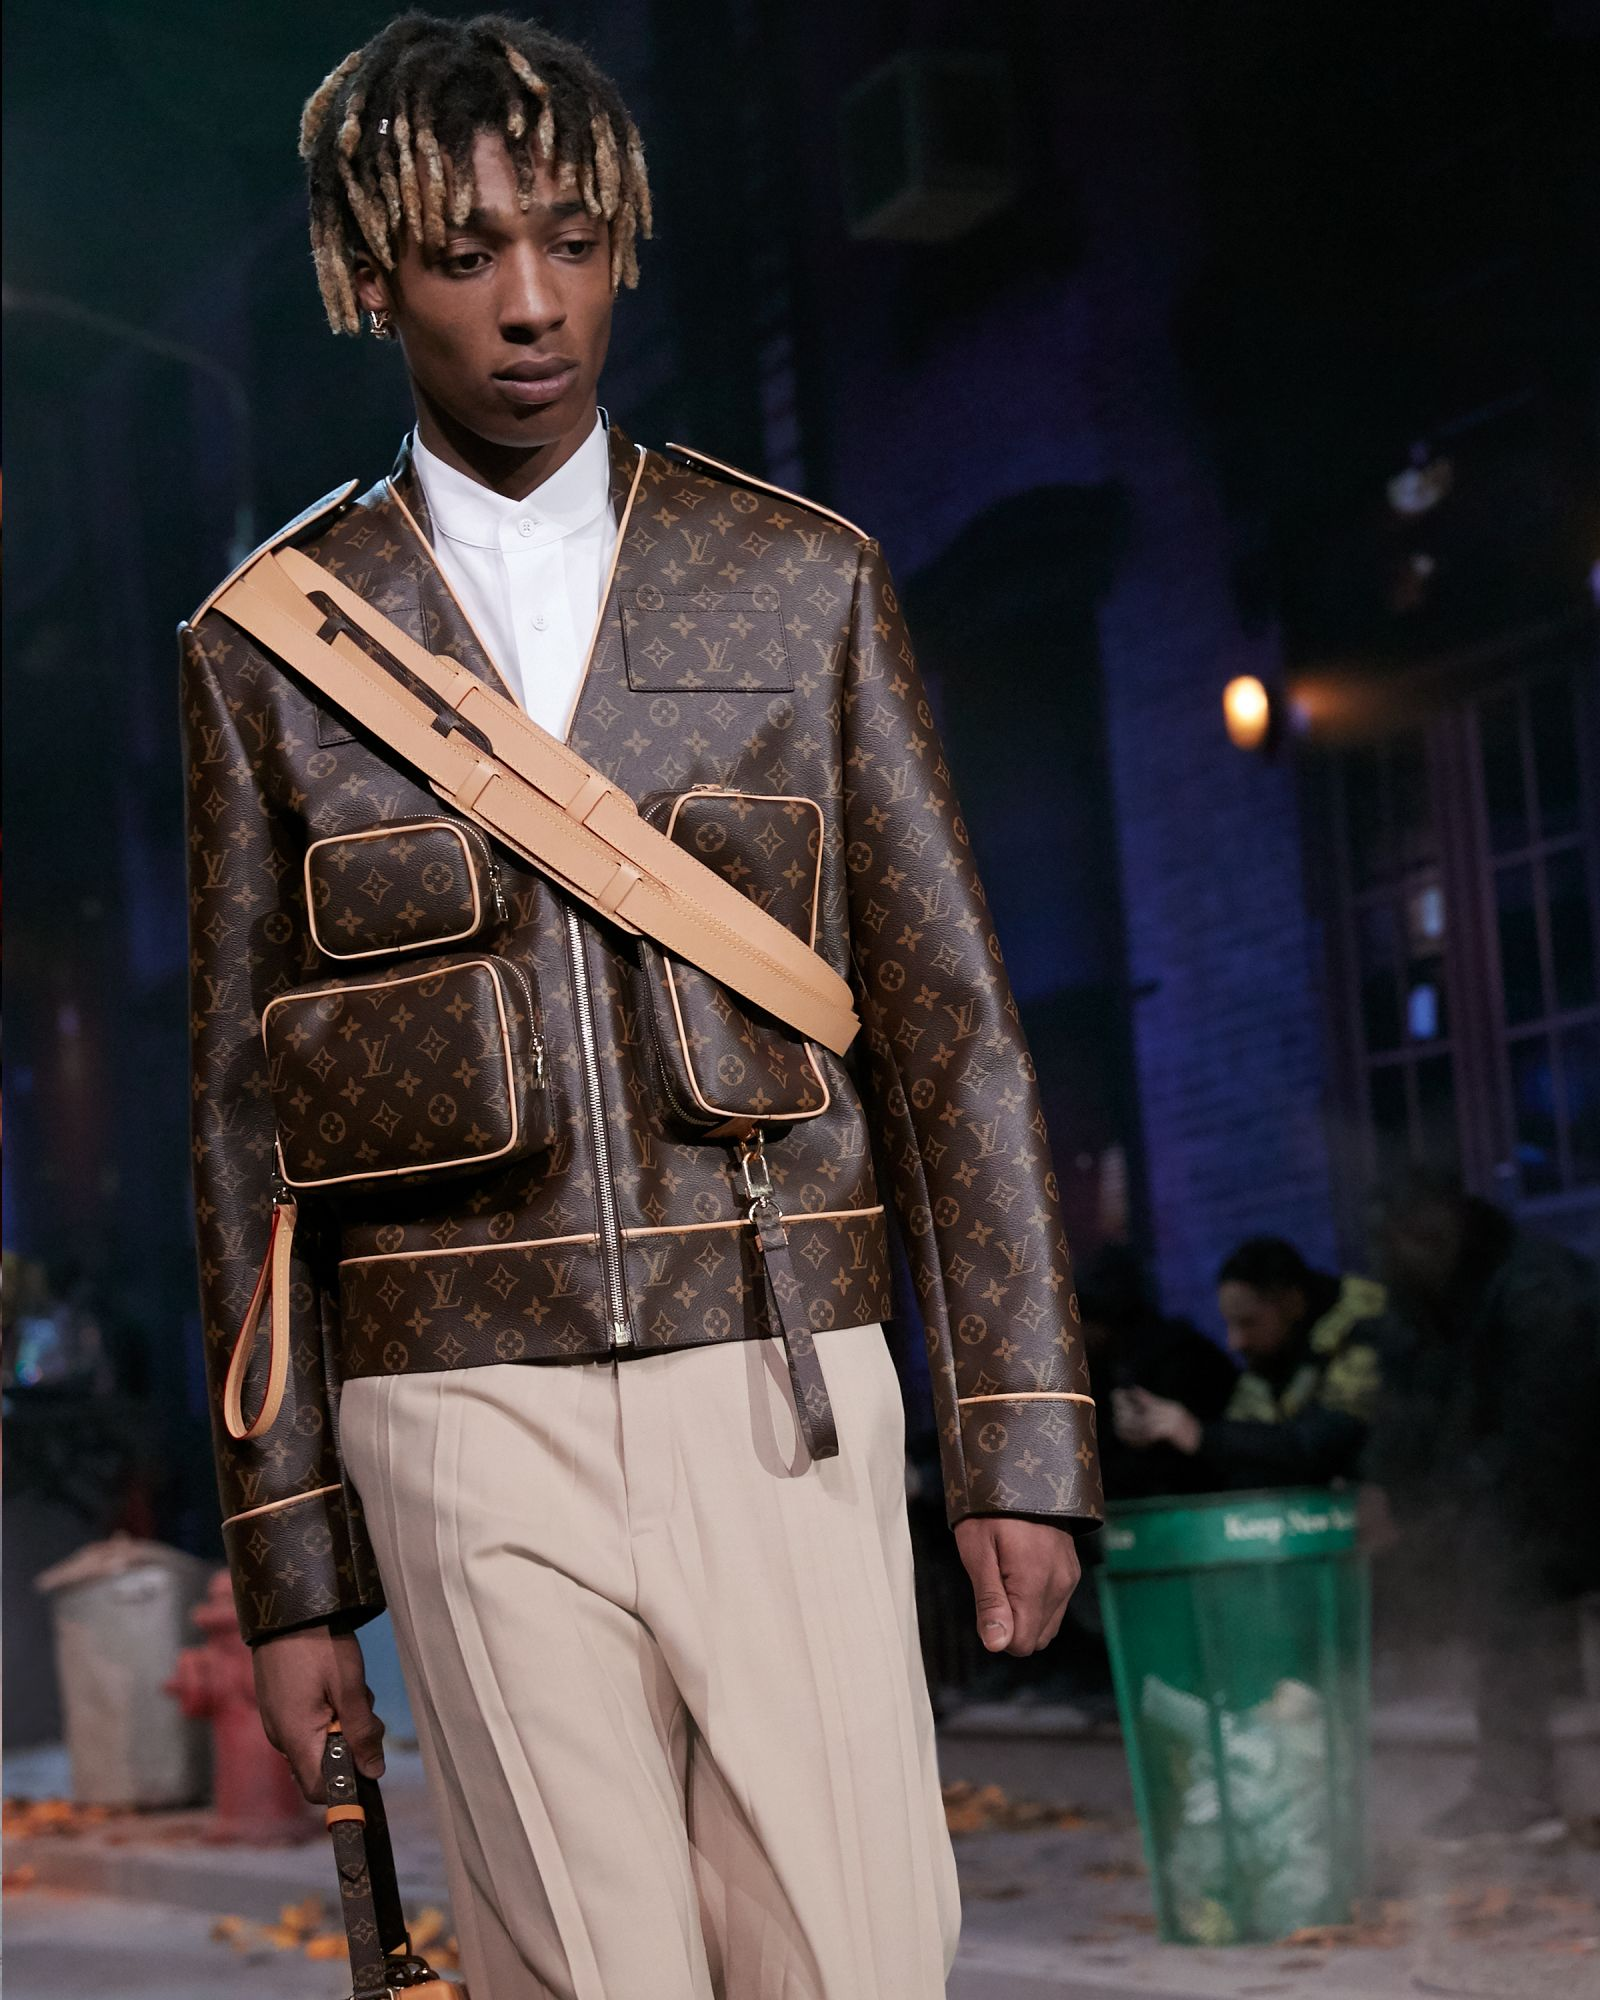 e9e3d482ddc Discover Virgil Abloh's FW19 Louis Vuitton Collection At The ...